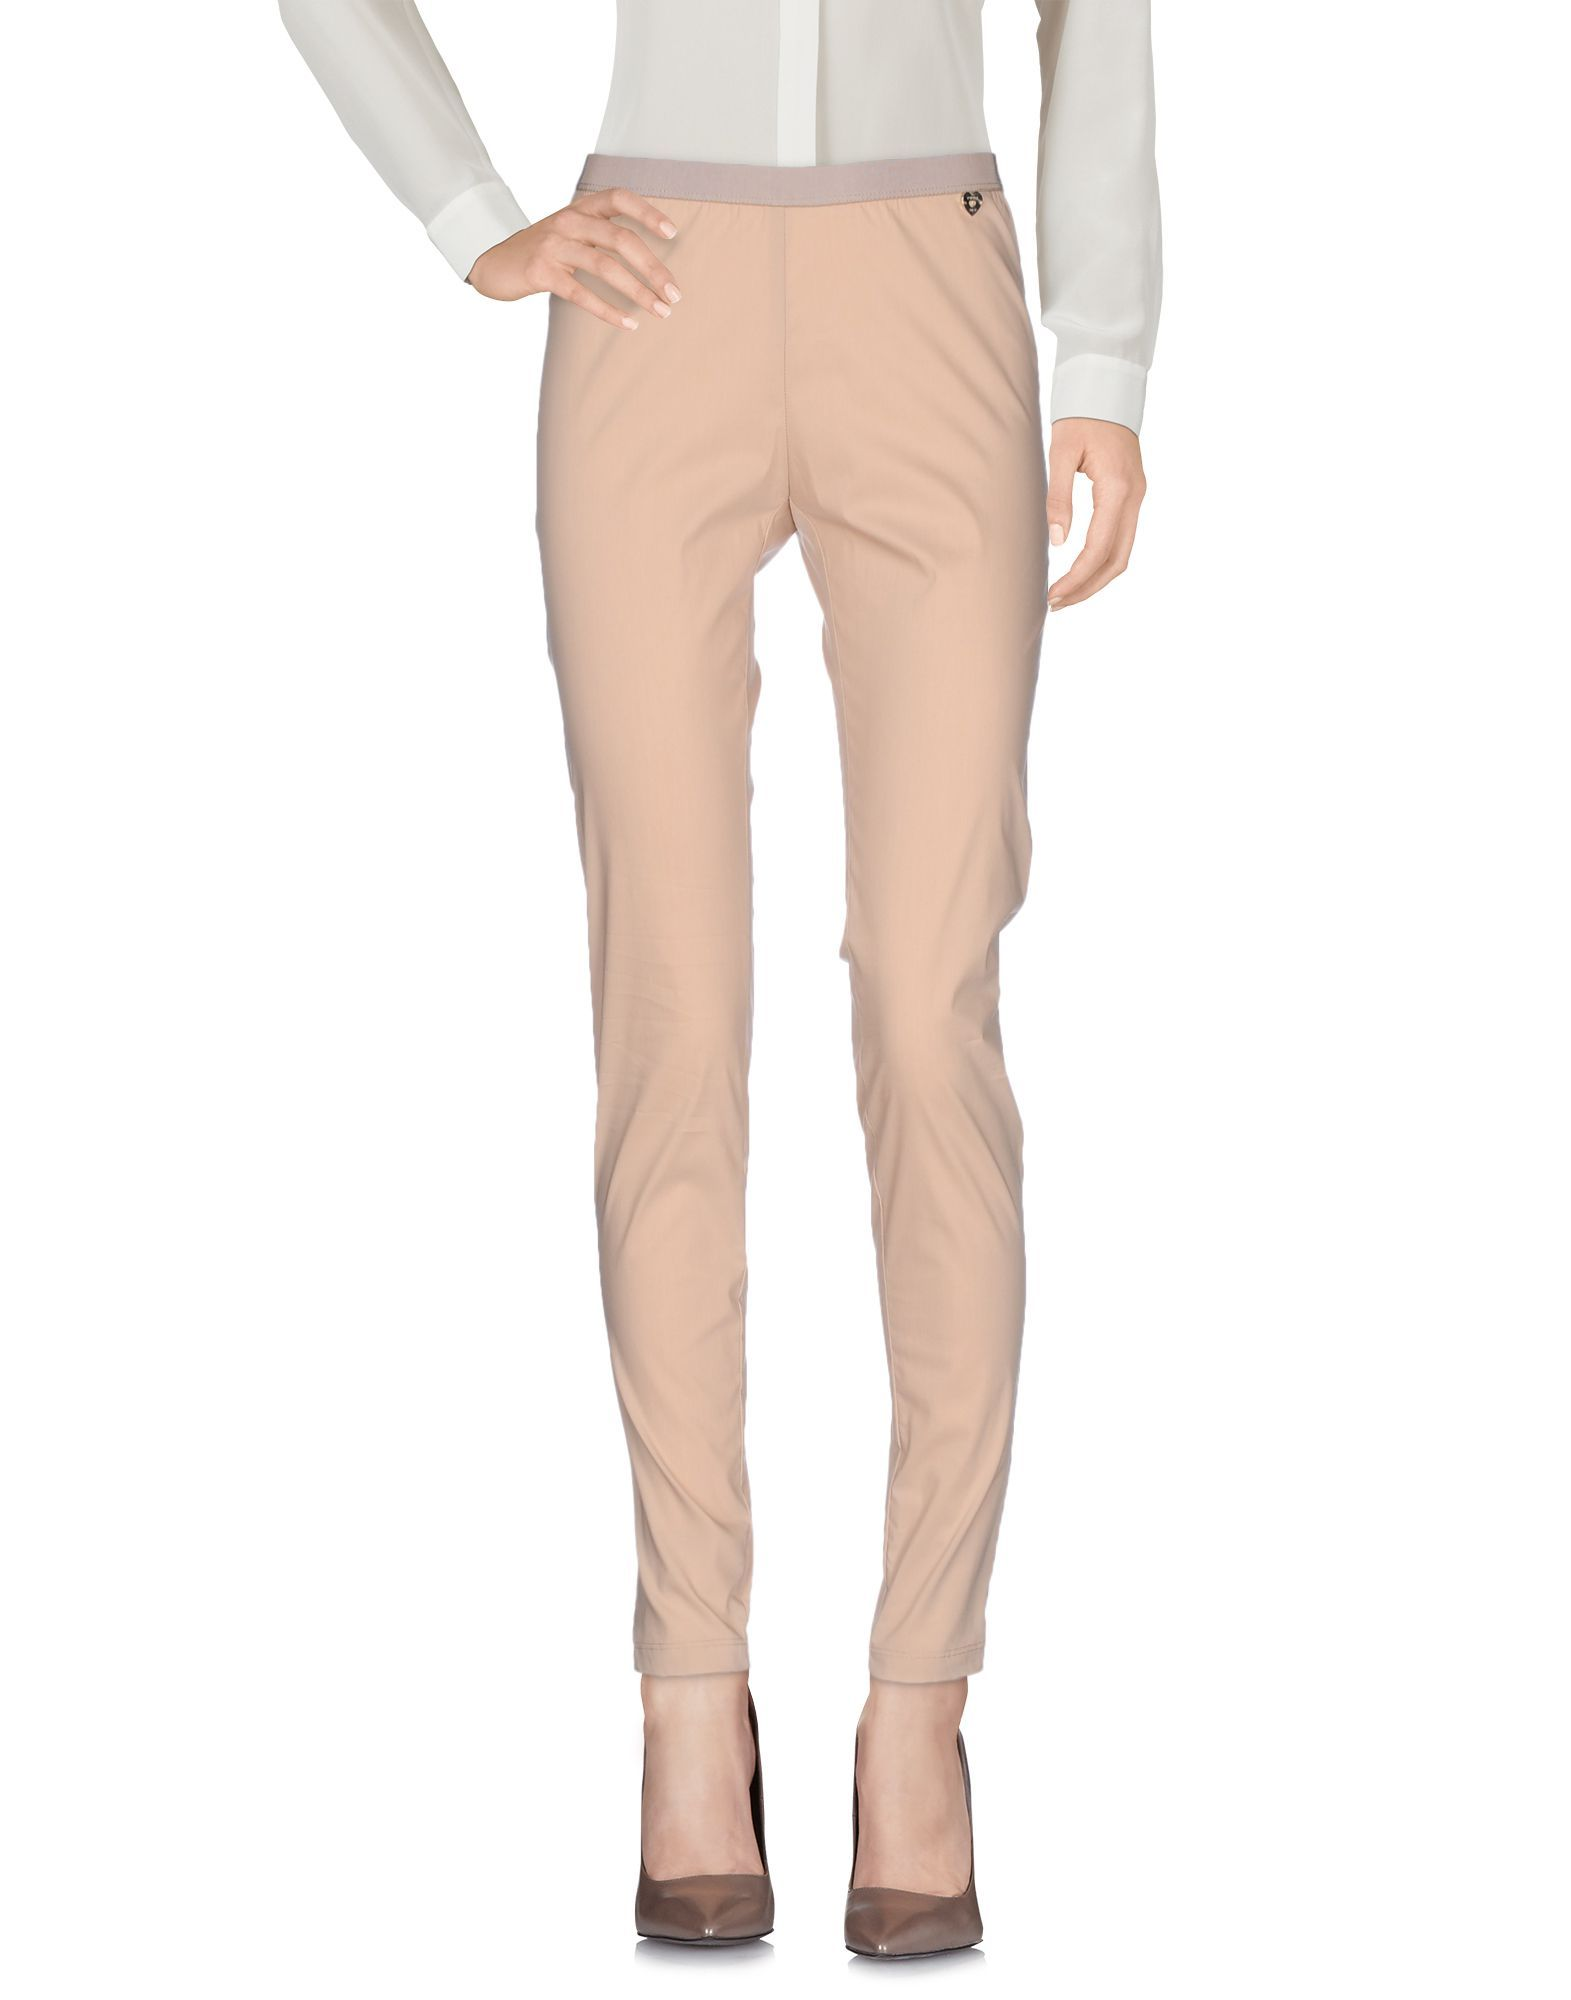 Twinset Beige Cotton Slim Fit Tapered Trousers